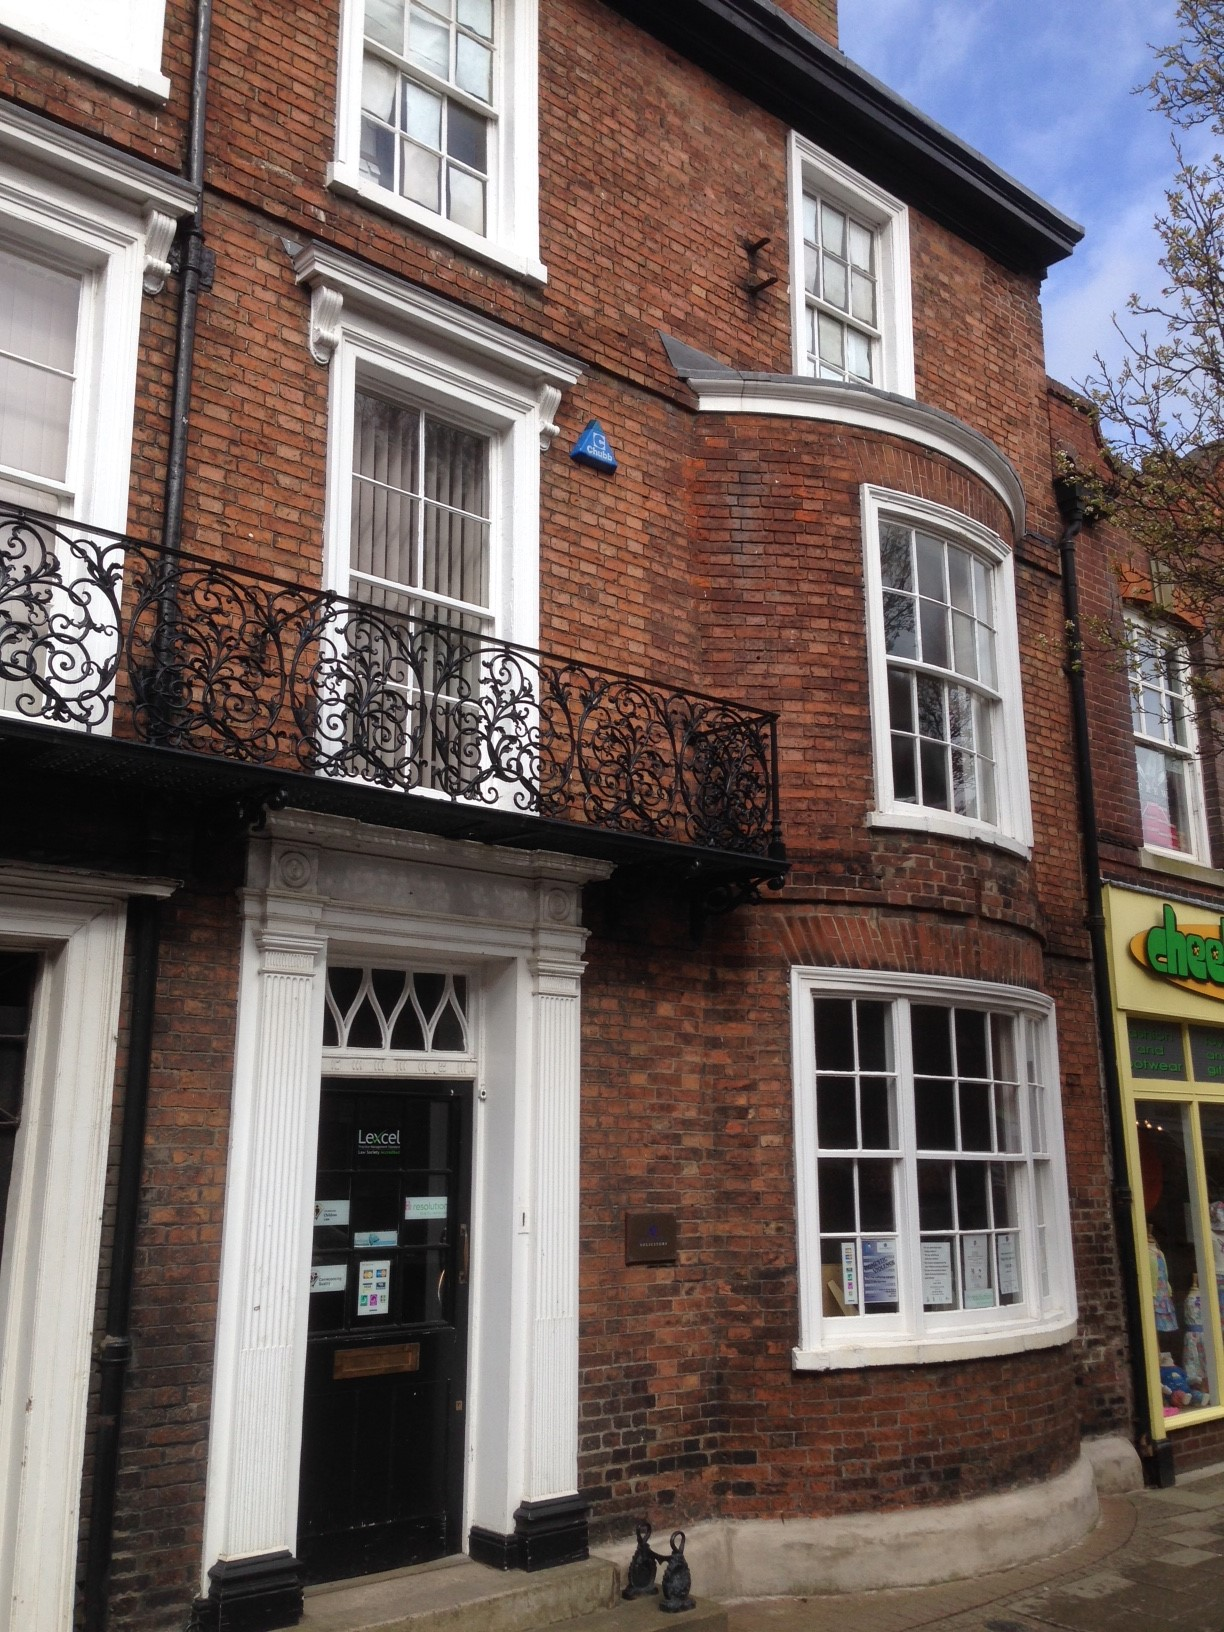 Retford Solicitor's offices; 7 Grove Street